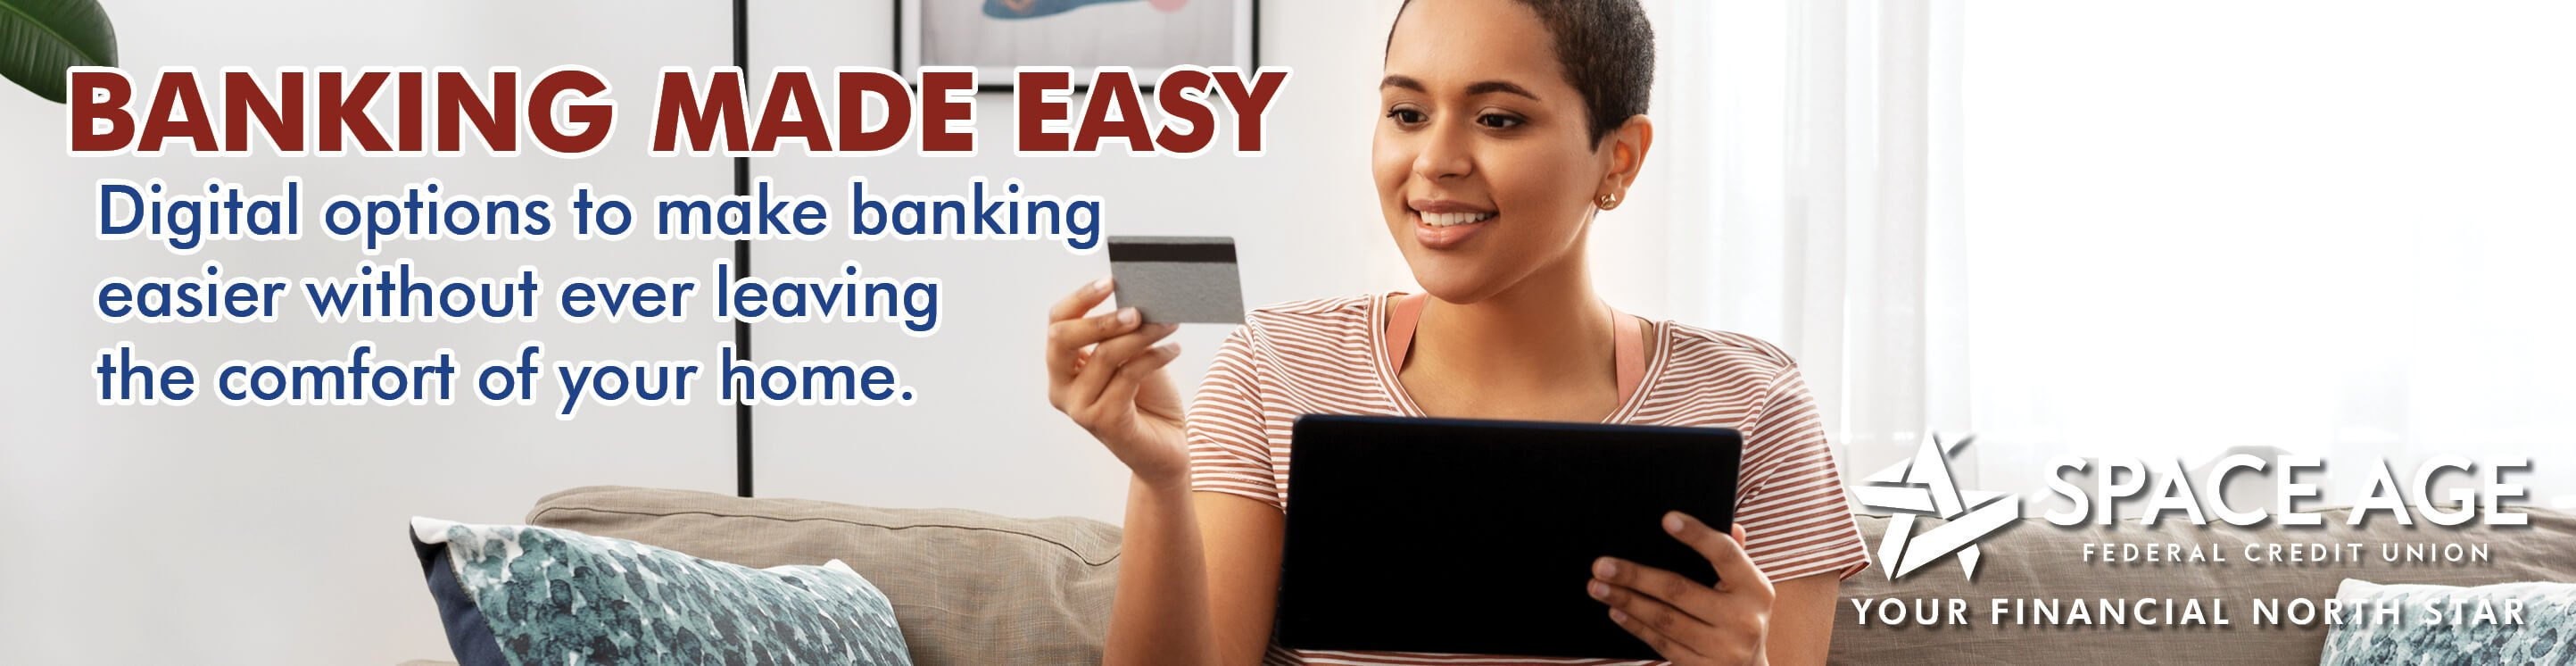 Pay your bills, get a loan and more without ever having to leave your home.